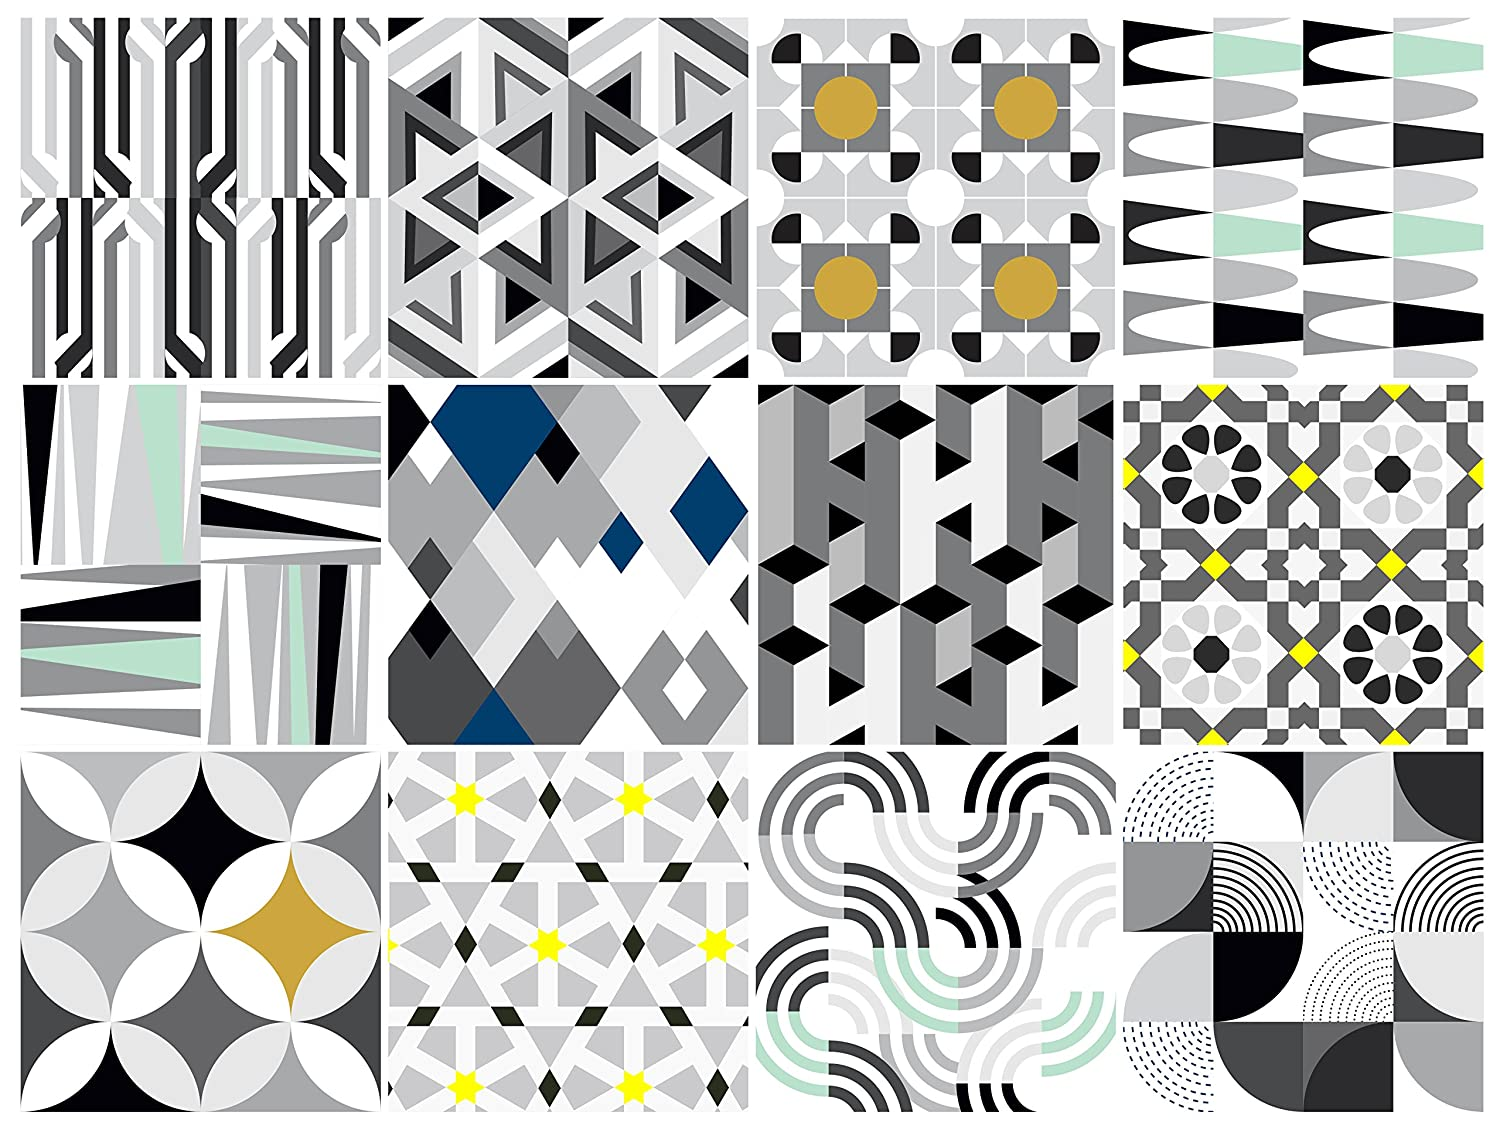 BAUHAUS Decorative Tile Stickers Set 12 units 6x6 inches. Peel & Stick Vinyl Tiles. Backsplash. Home Decor. Furniture Decor.